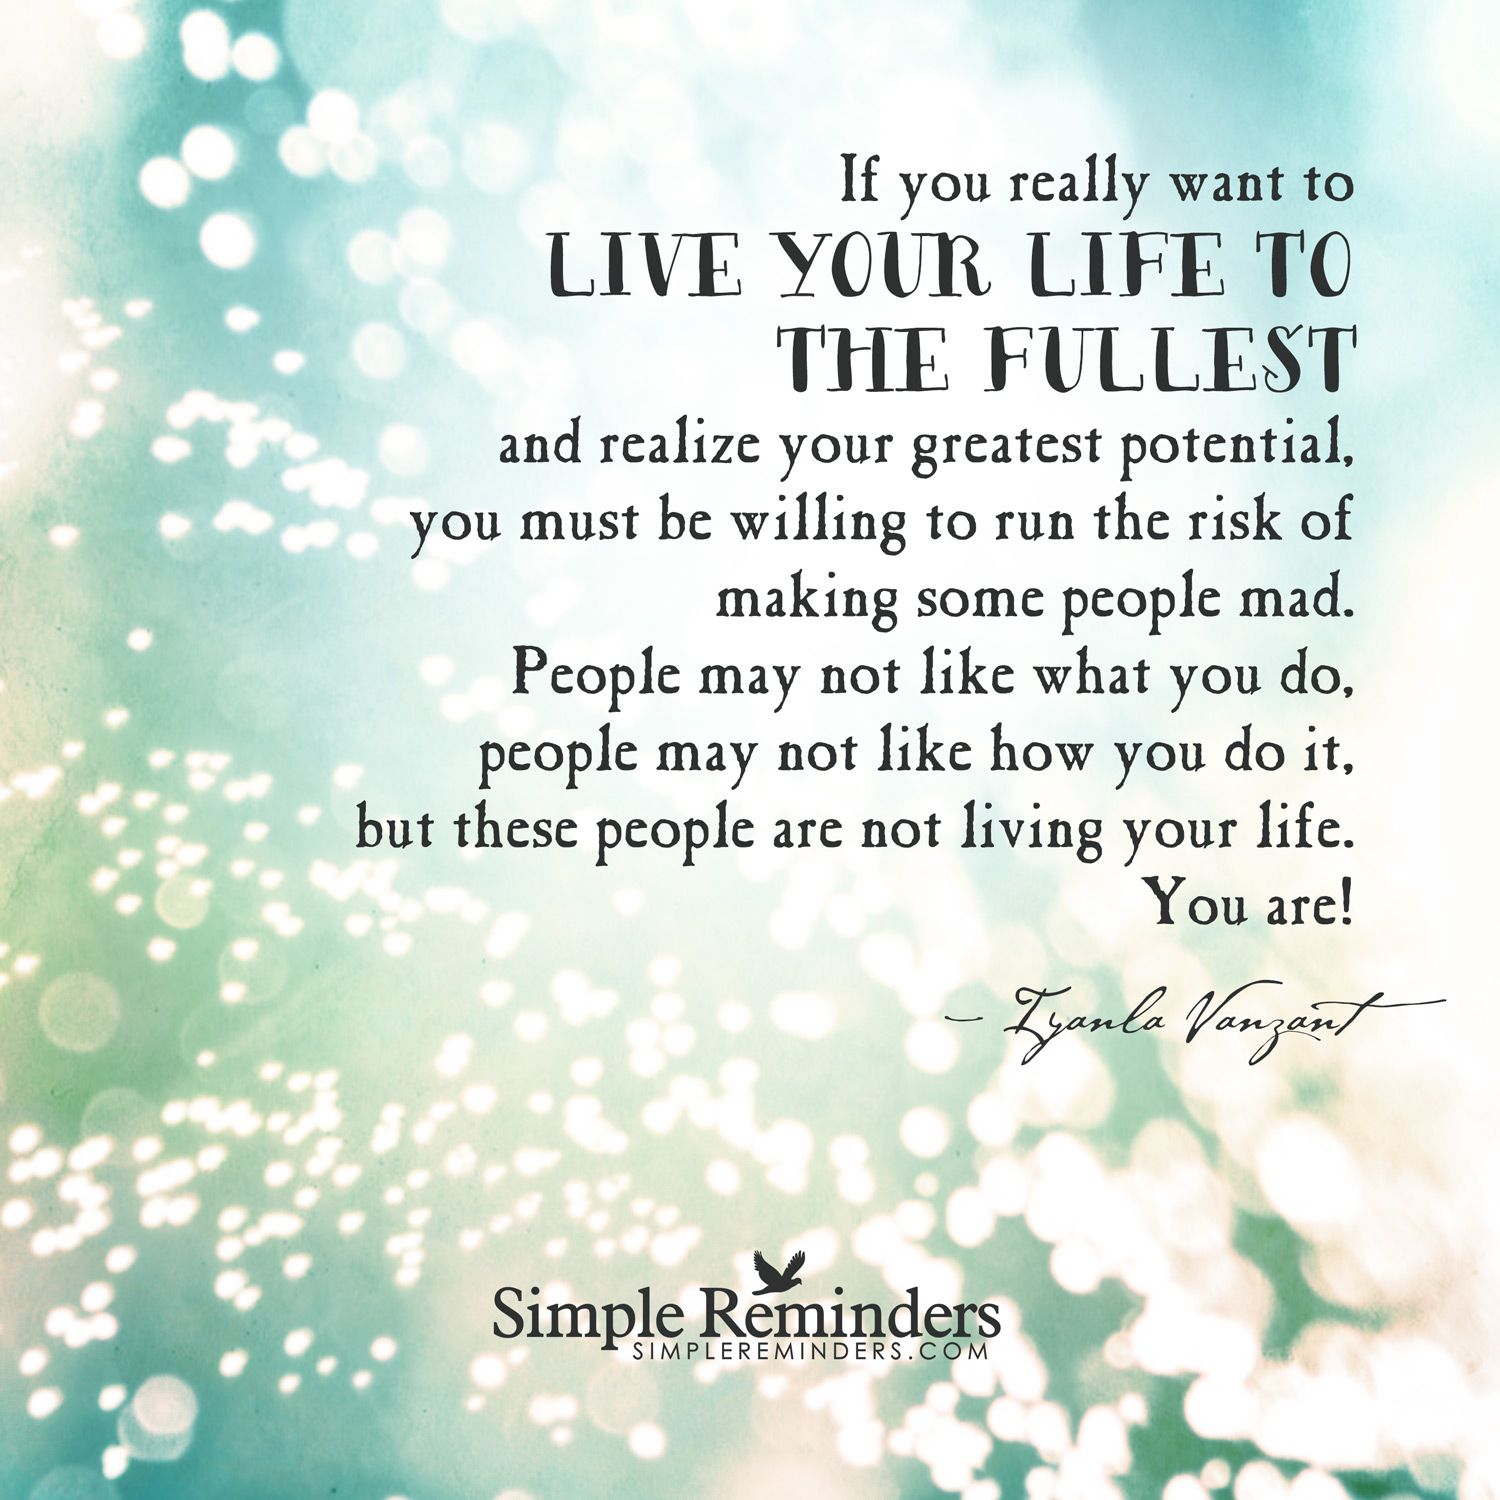 Quotes About Living Life To The Fullest Be Willing To Make People Madiyanla Vanzant To Be Freeoser